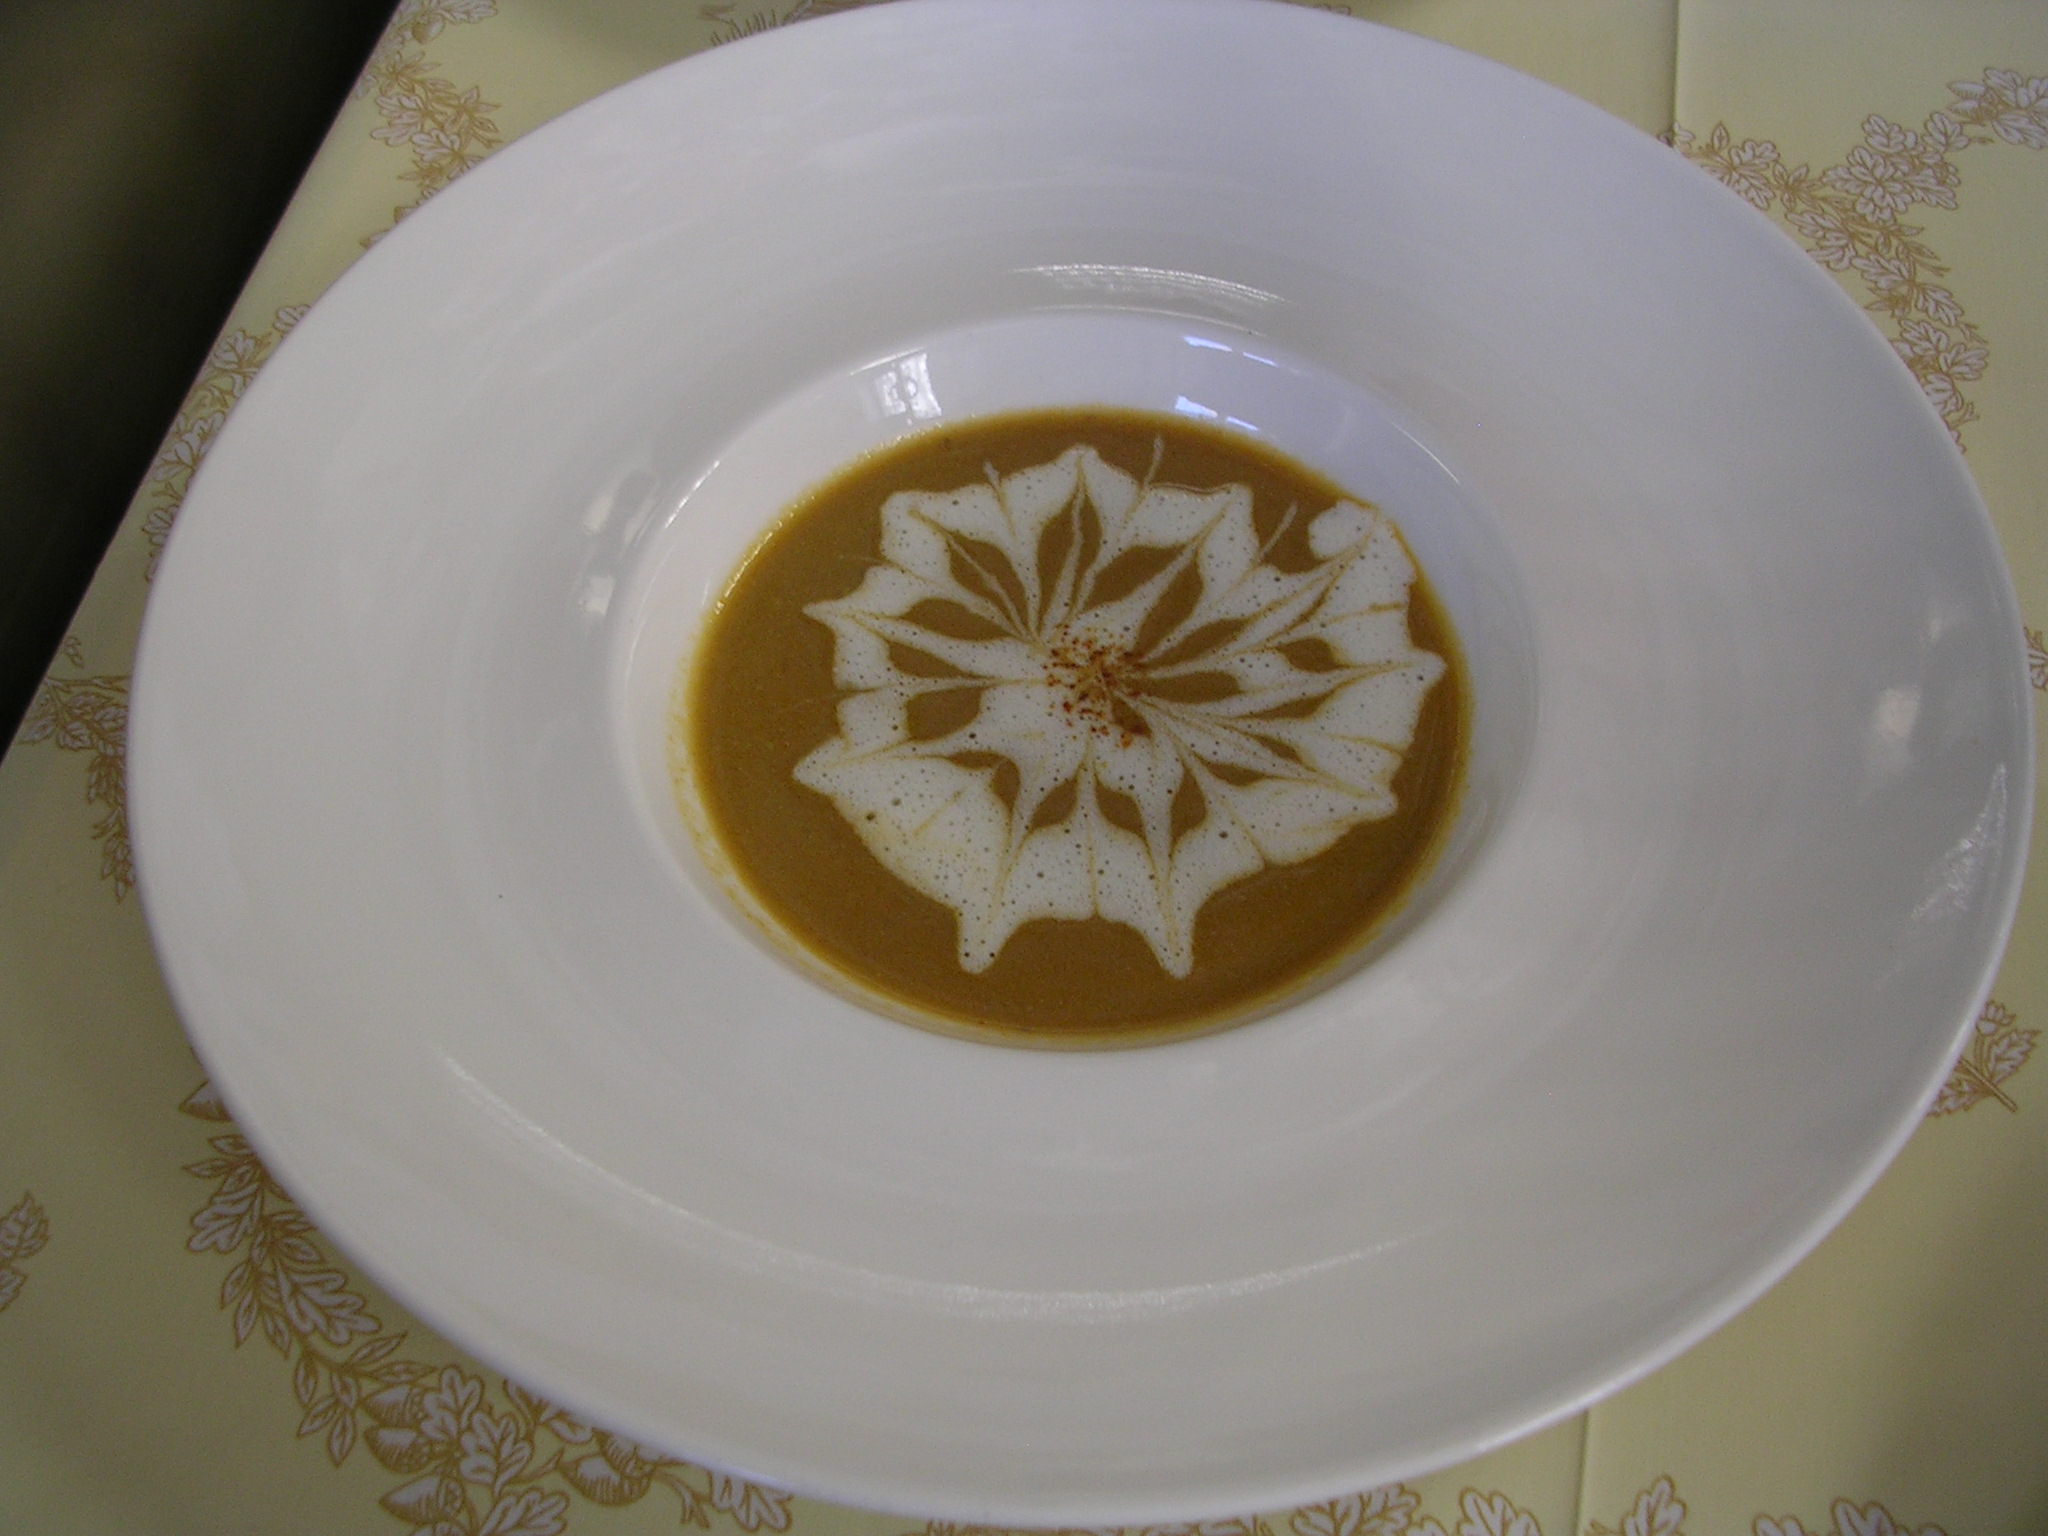 ... bisque how to make crab bisque broccoli and crab bisque crab bisque